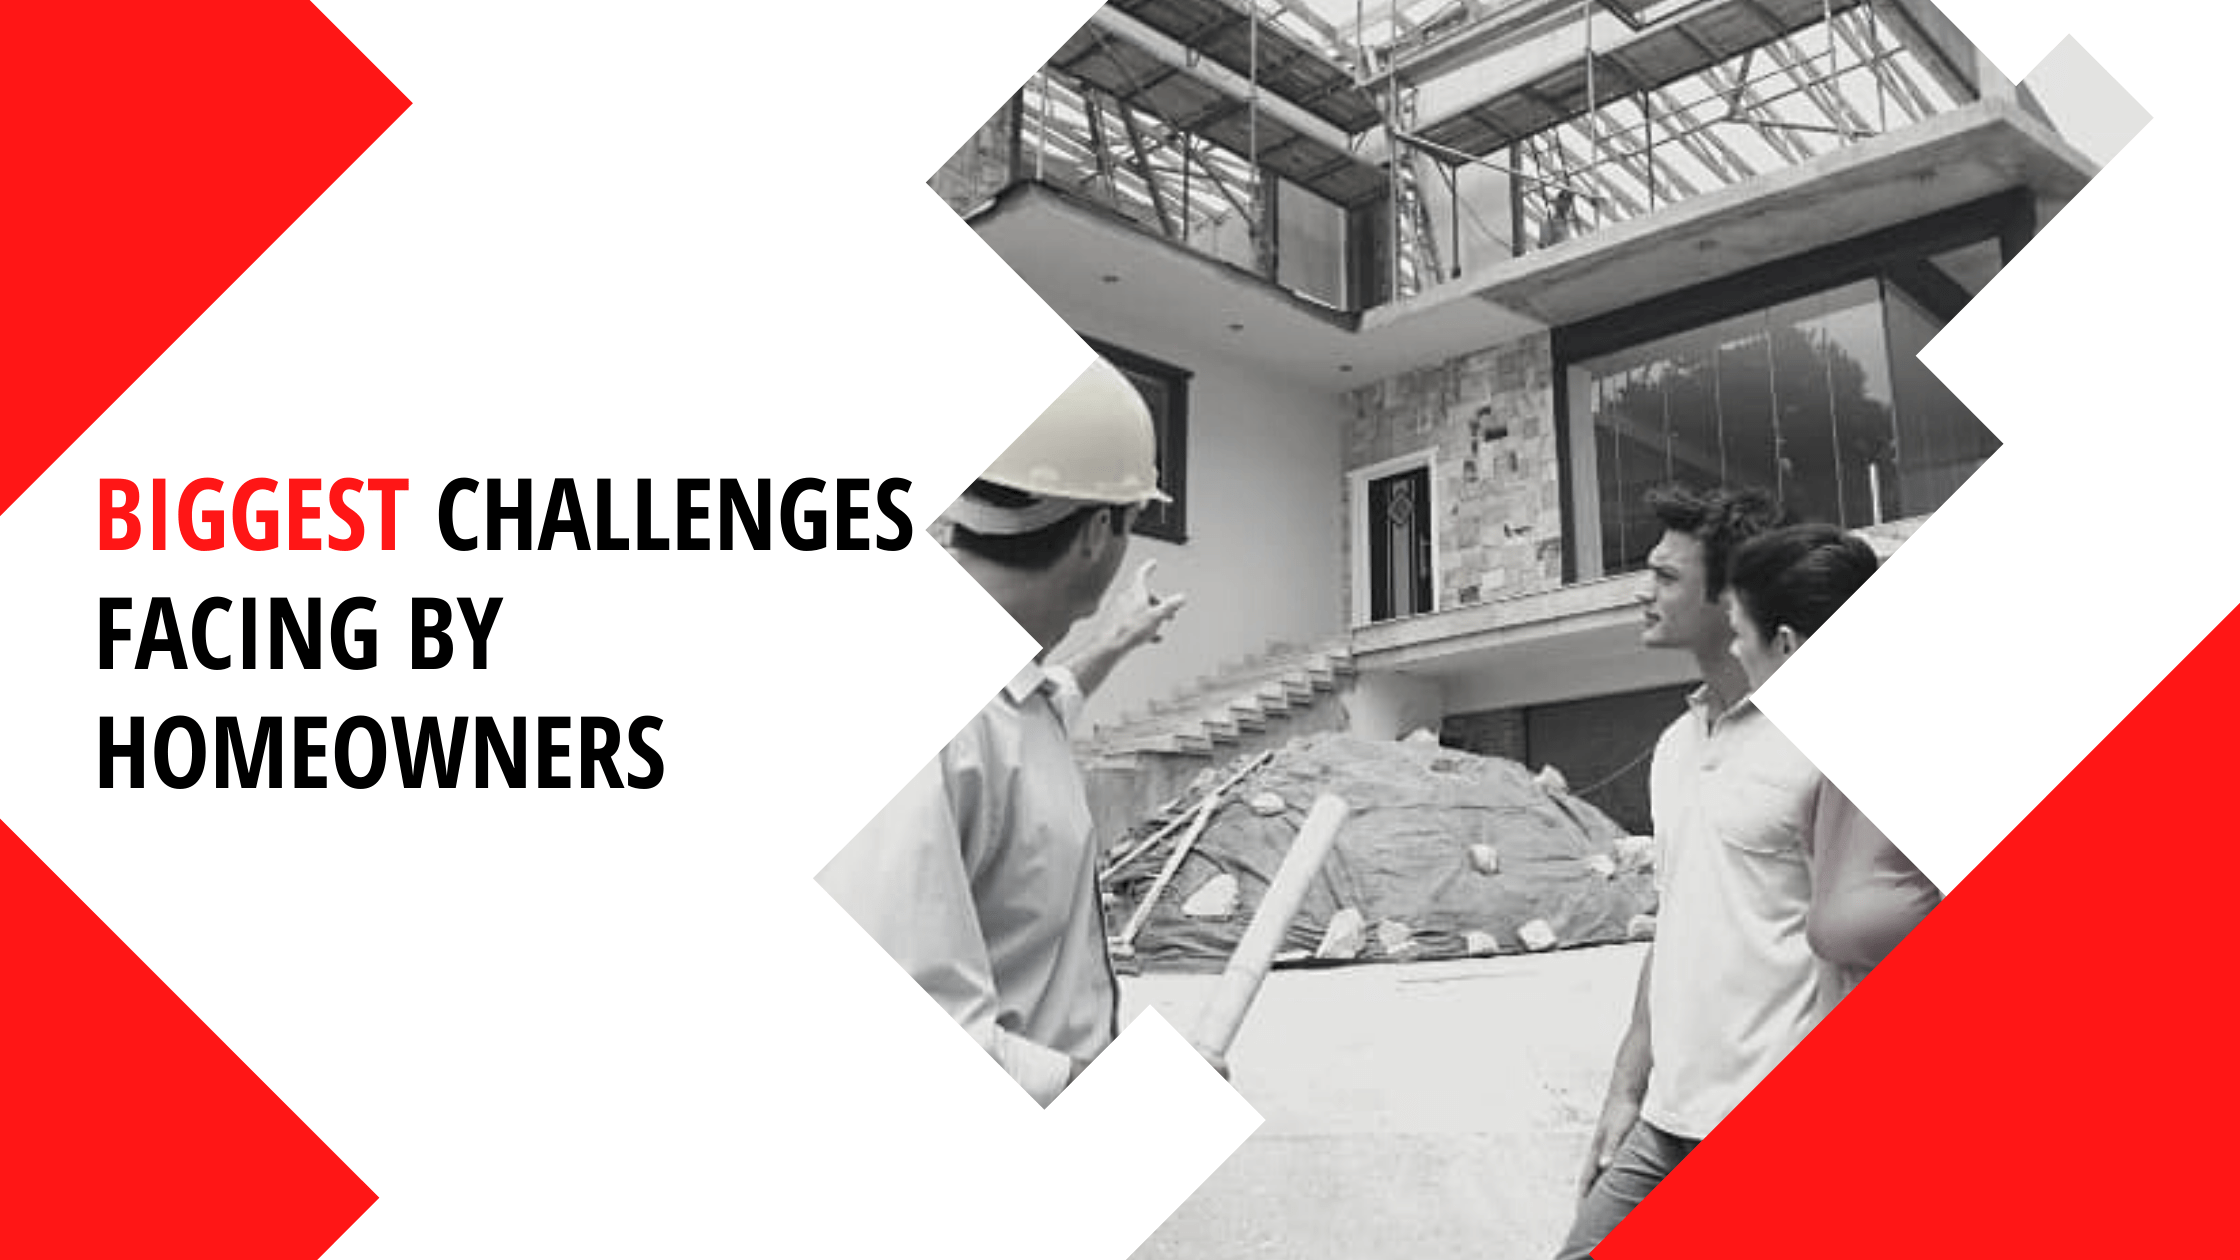 challenges facing by homeowners